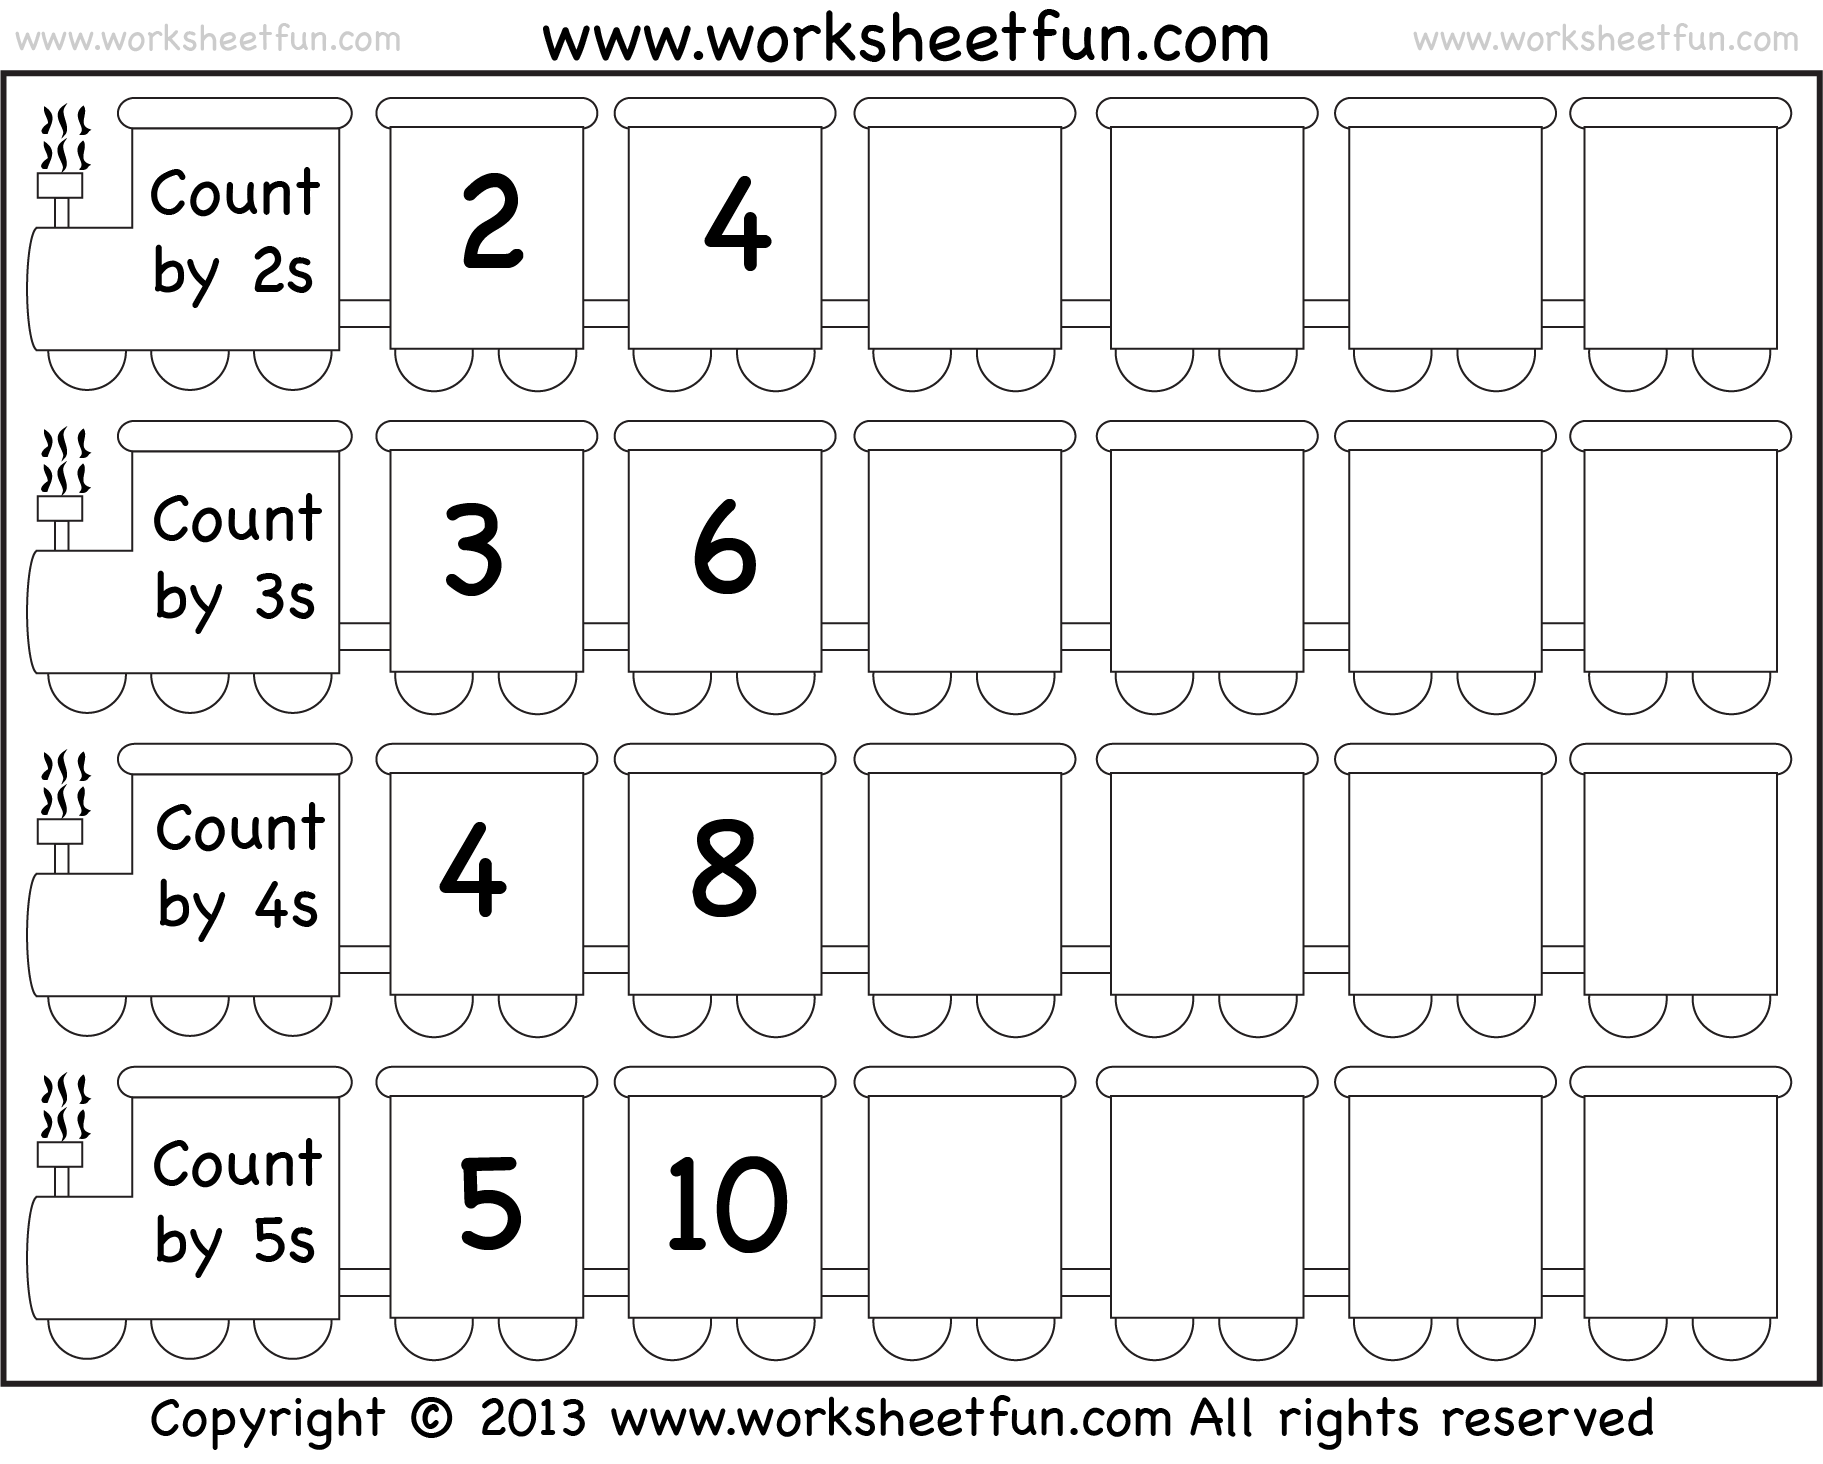 worksheet Skip Count skip counting count by 2s free printable worksheets worksheetfun 2 3 4 and 5 worksheet